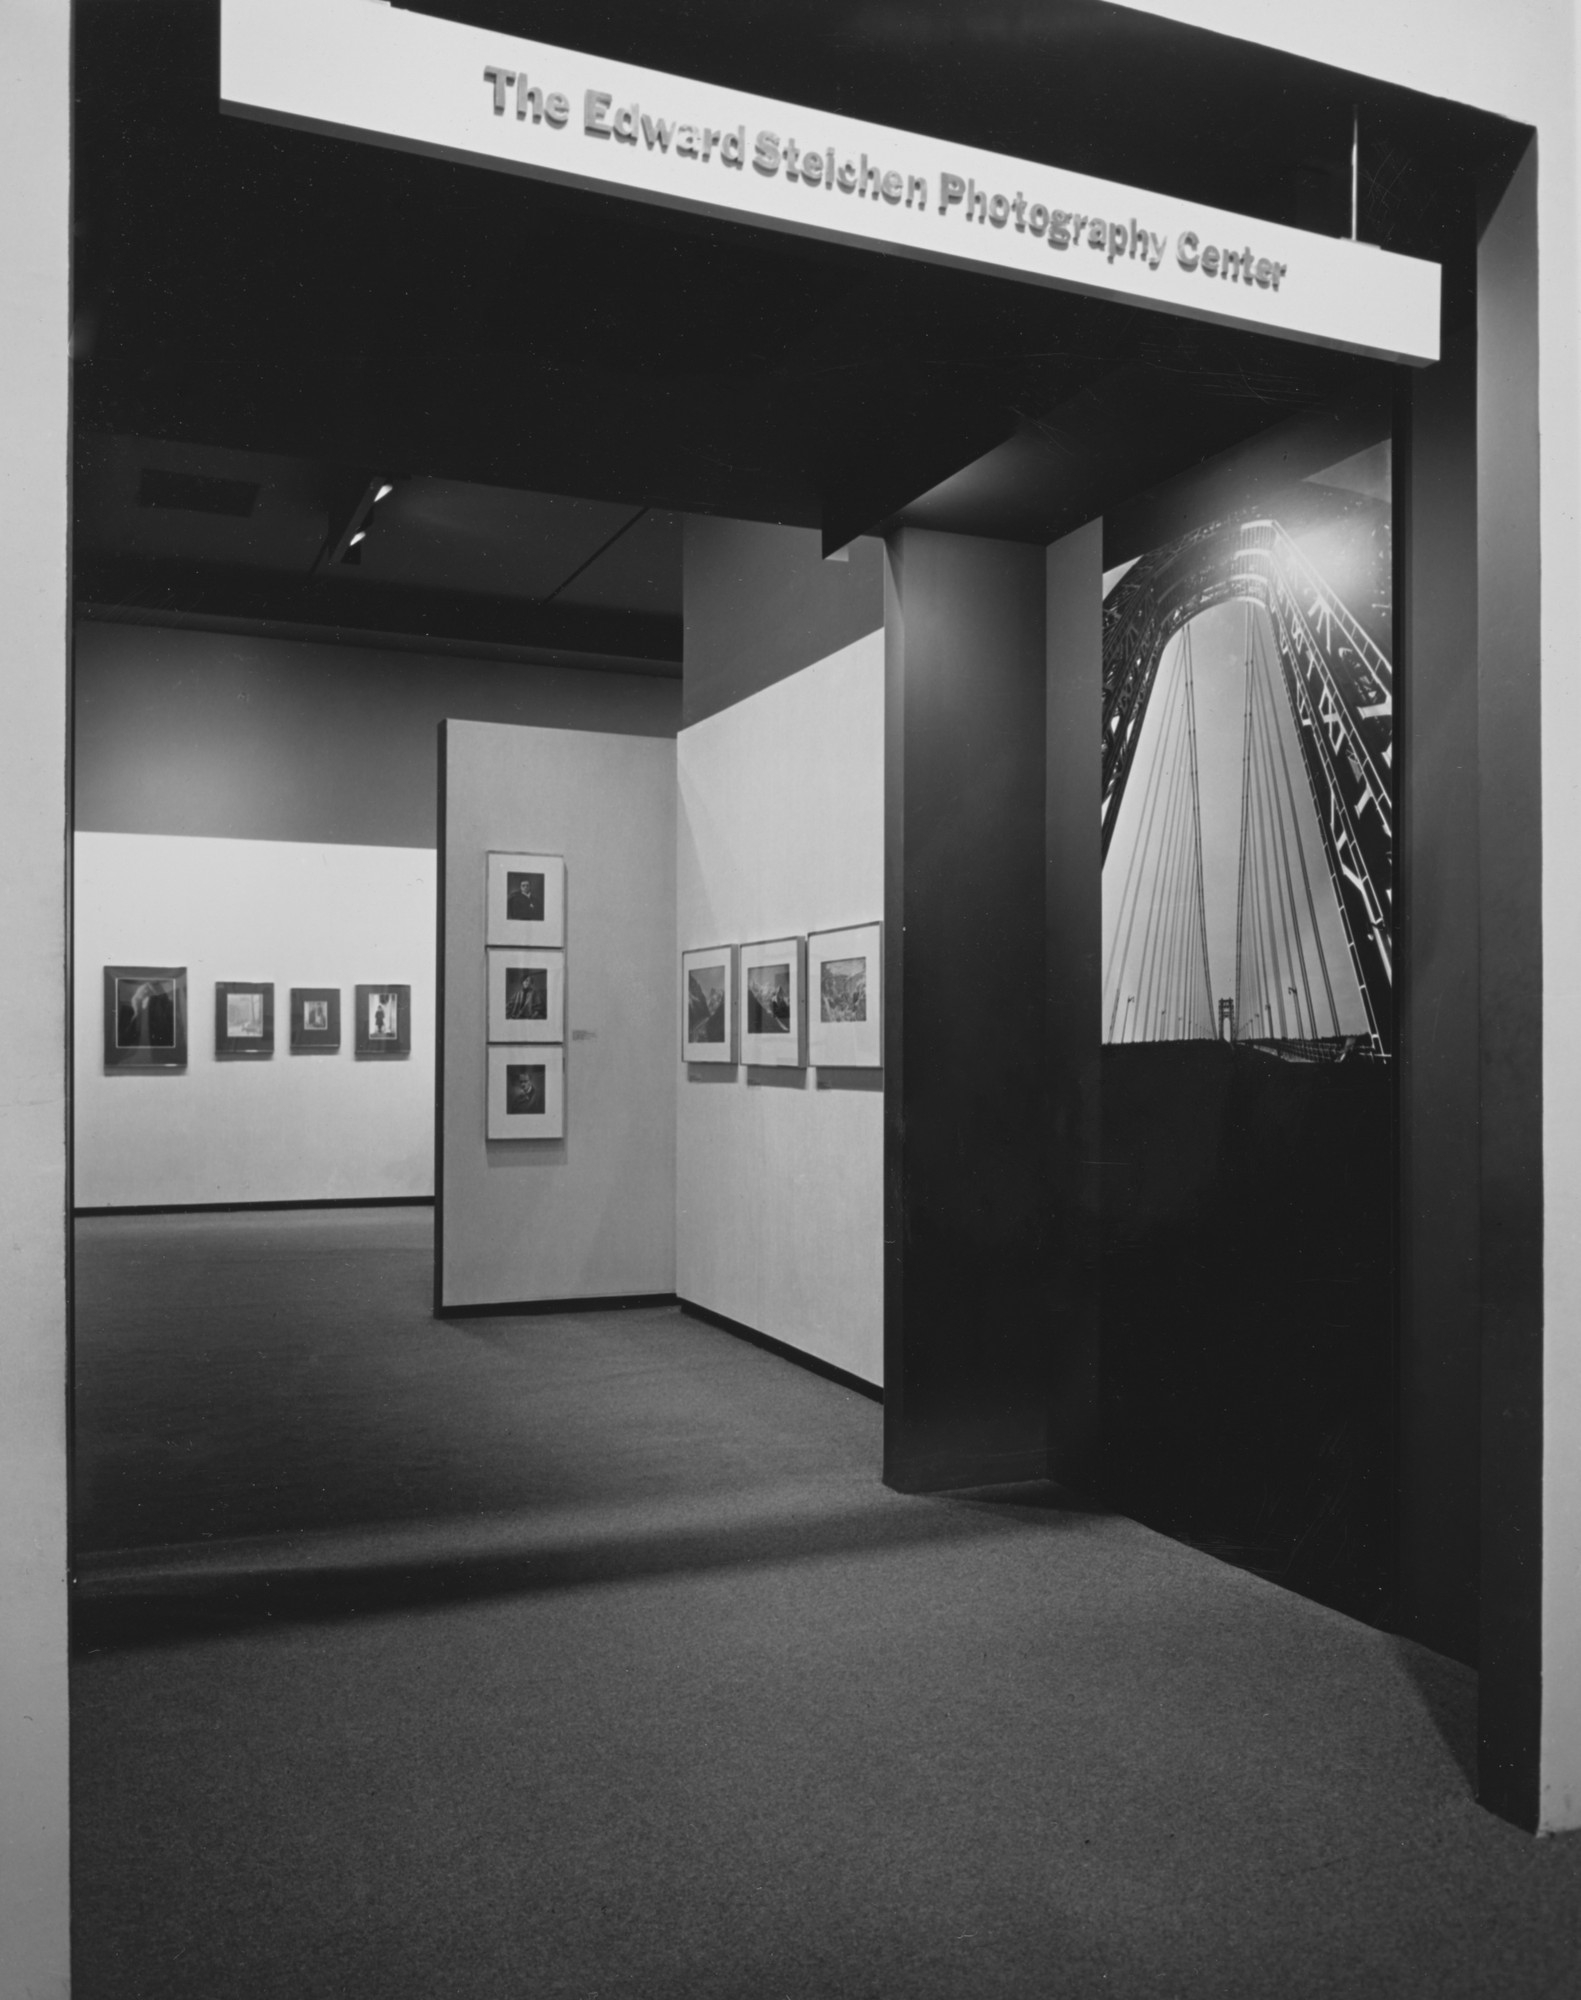 "Installation view of the exhibition, ""Edward Steichen Photography Center"" May 27, 1964 [unknown closing date]. Photographic Archive. The Museum of Modern Art Archives, New York. IN736.1. Photograph by Rolf Petersen."